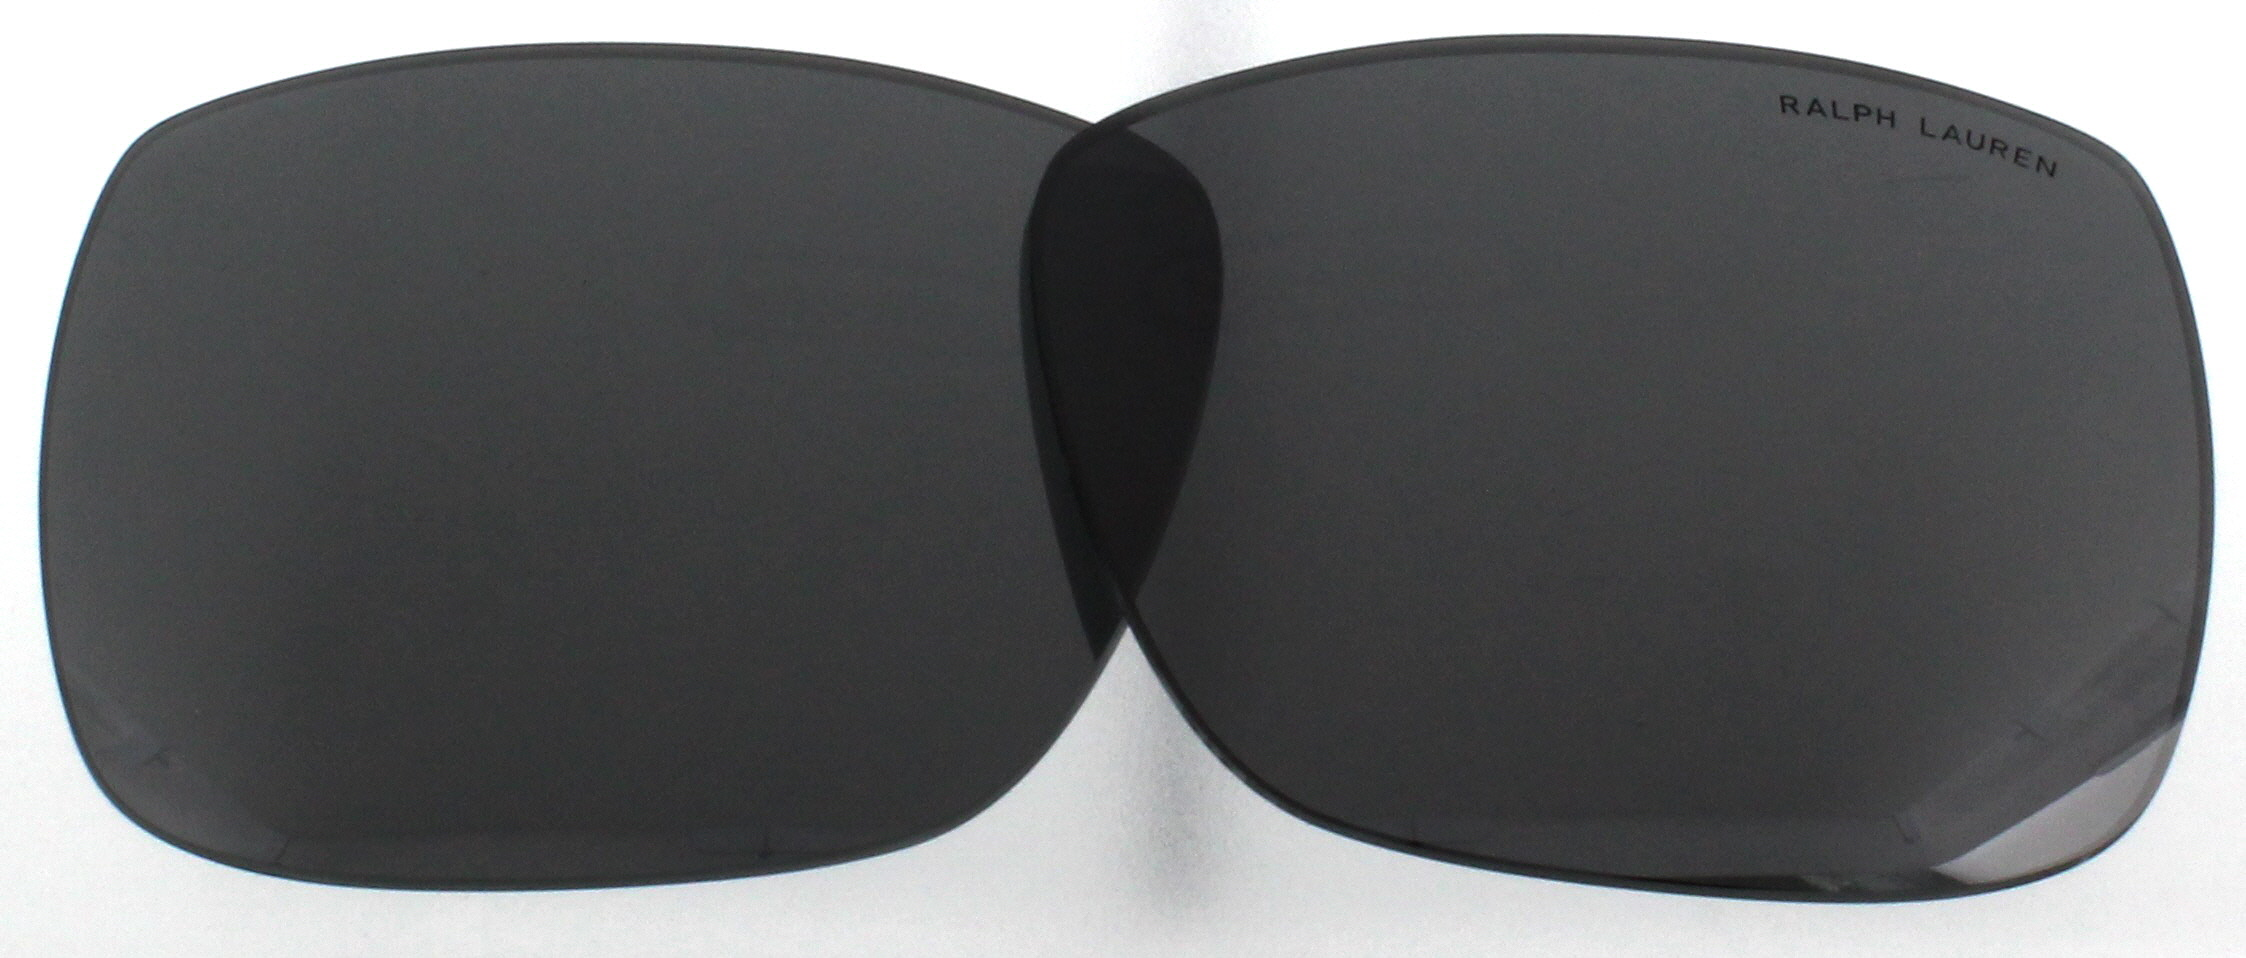 269608e642e Ralph Lauren Ph 4084 52846g Black Mens Sunglasses for sale online